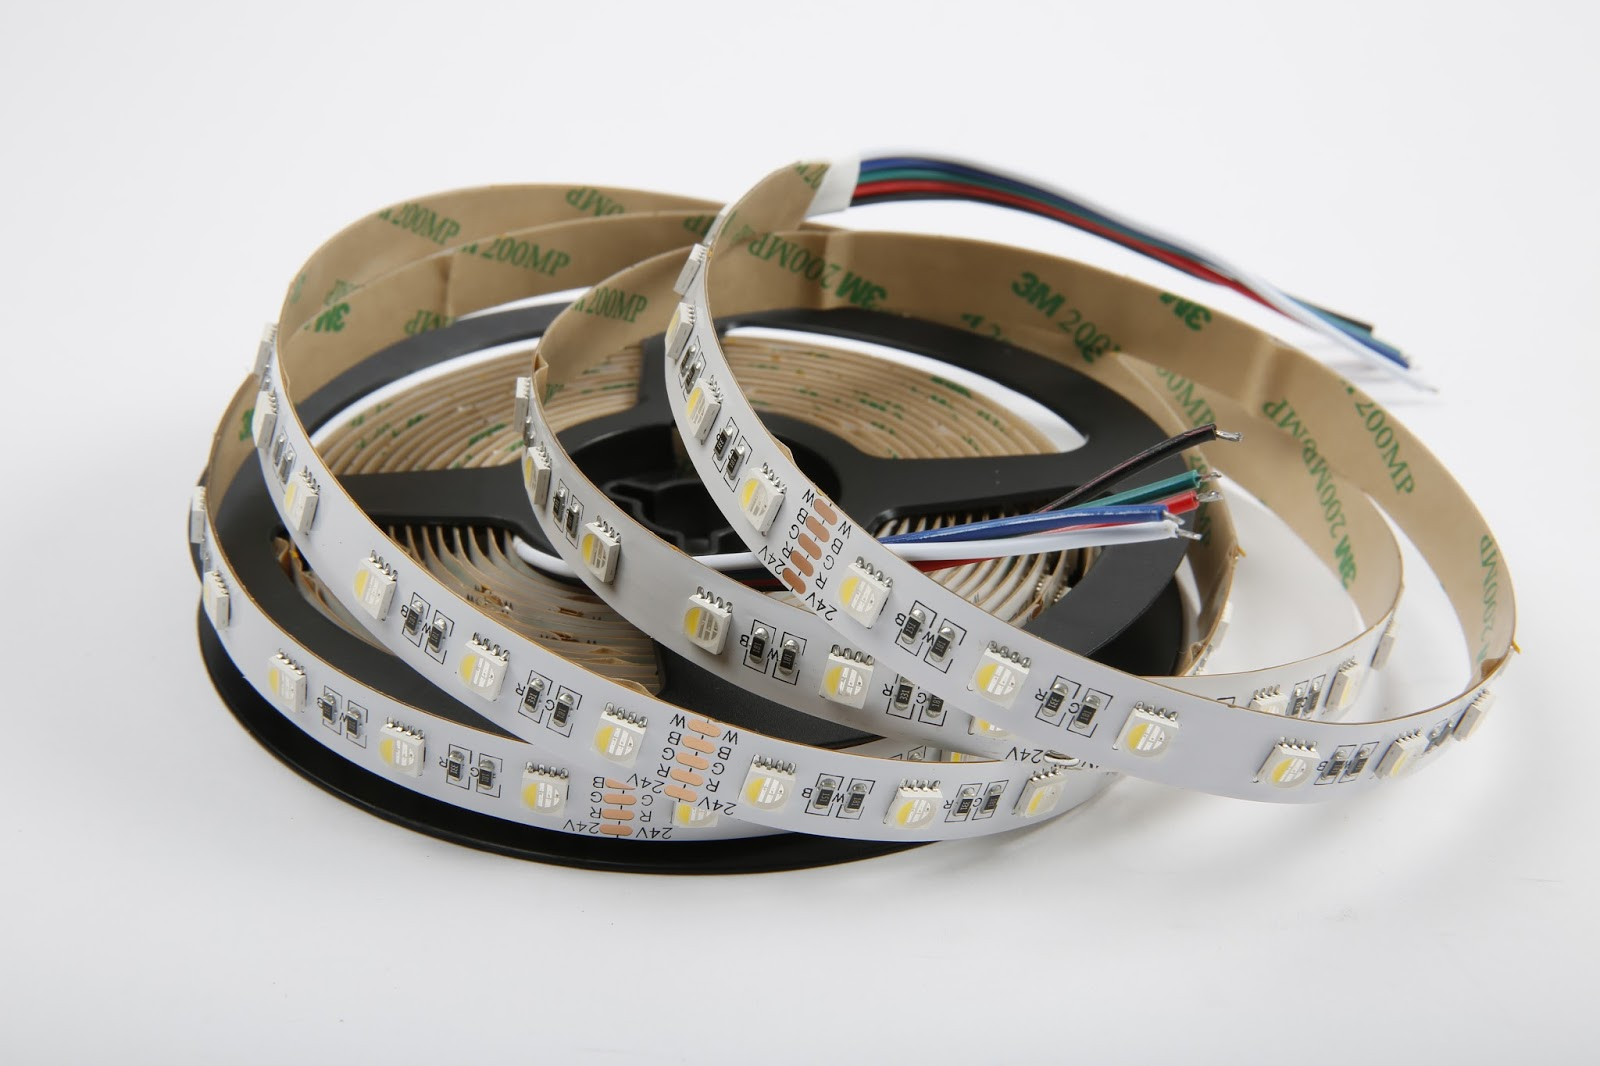 Rgbw Led Strip And Rgbww Rgb Cct Digital Weatherproof 60 1m Recently We Have The It Has Large Difference With Before Is Color Temperature During